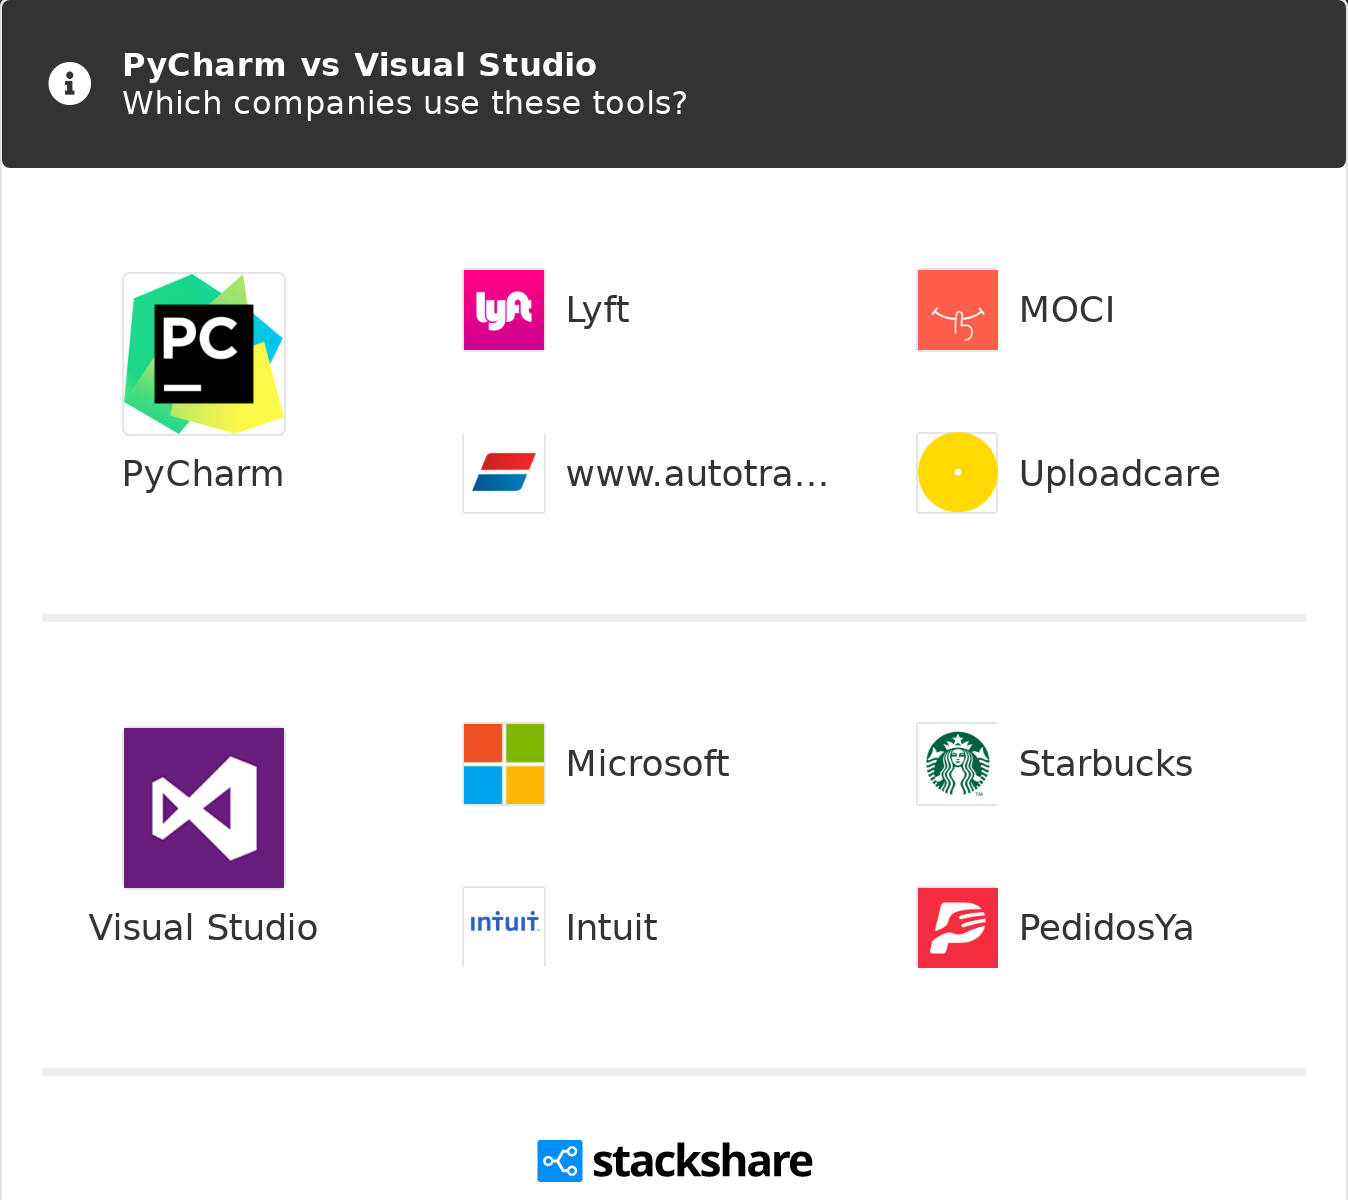 PyCharm vs Visual Studio | What are the differences?